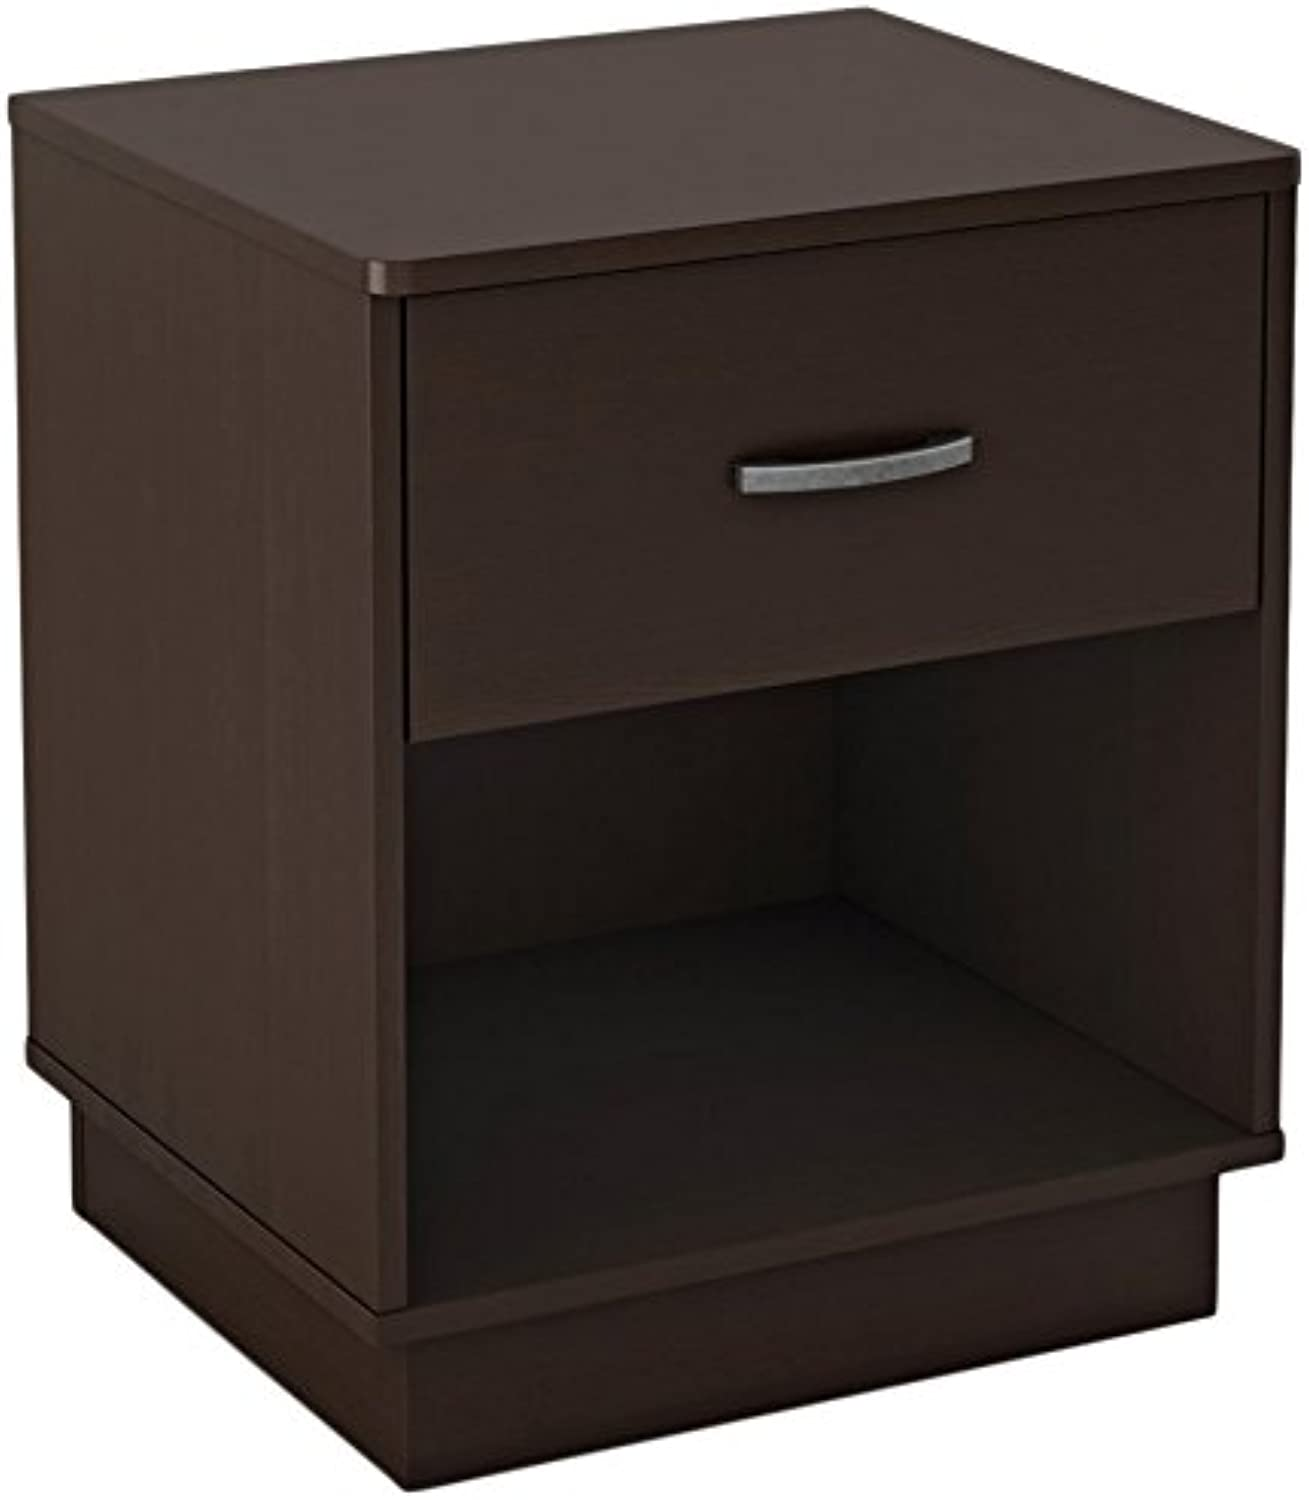 South Shore Furniture Logik Collection, Night Stand, Chocolate